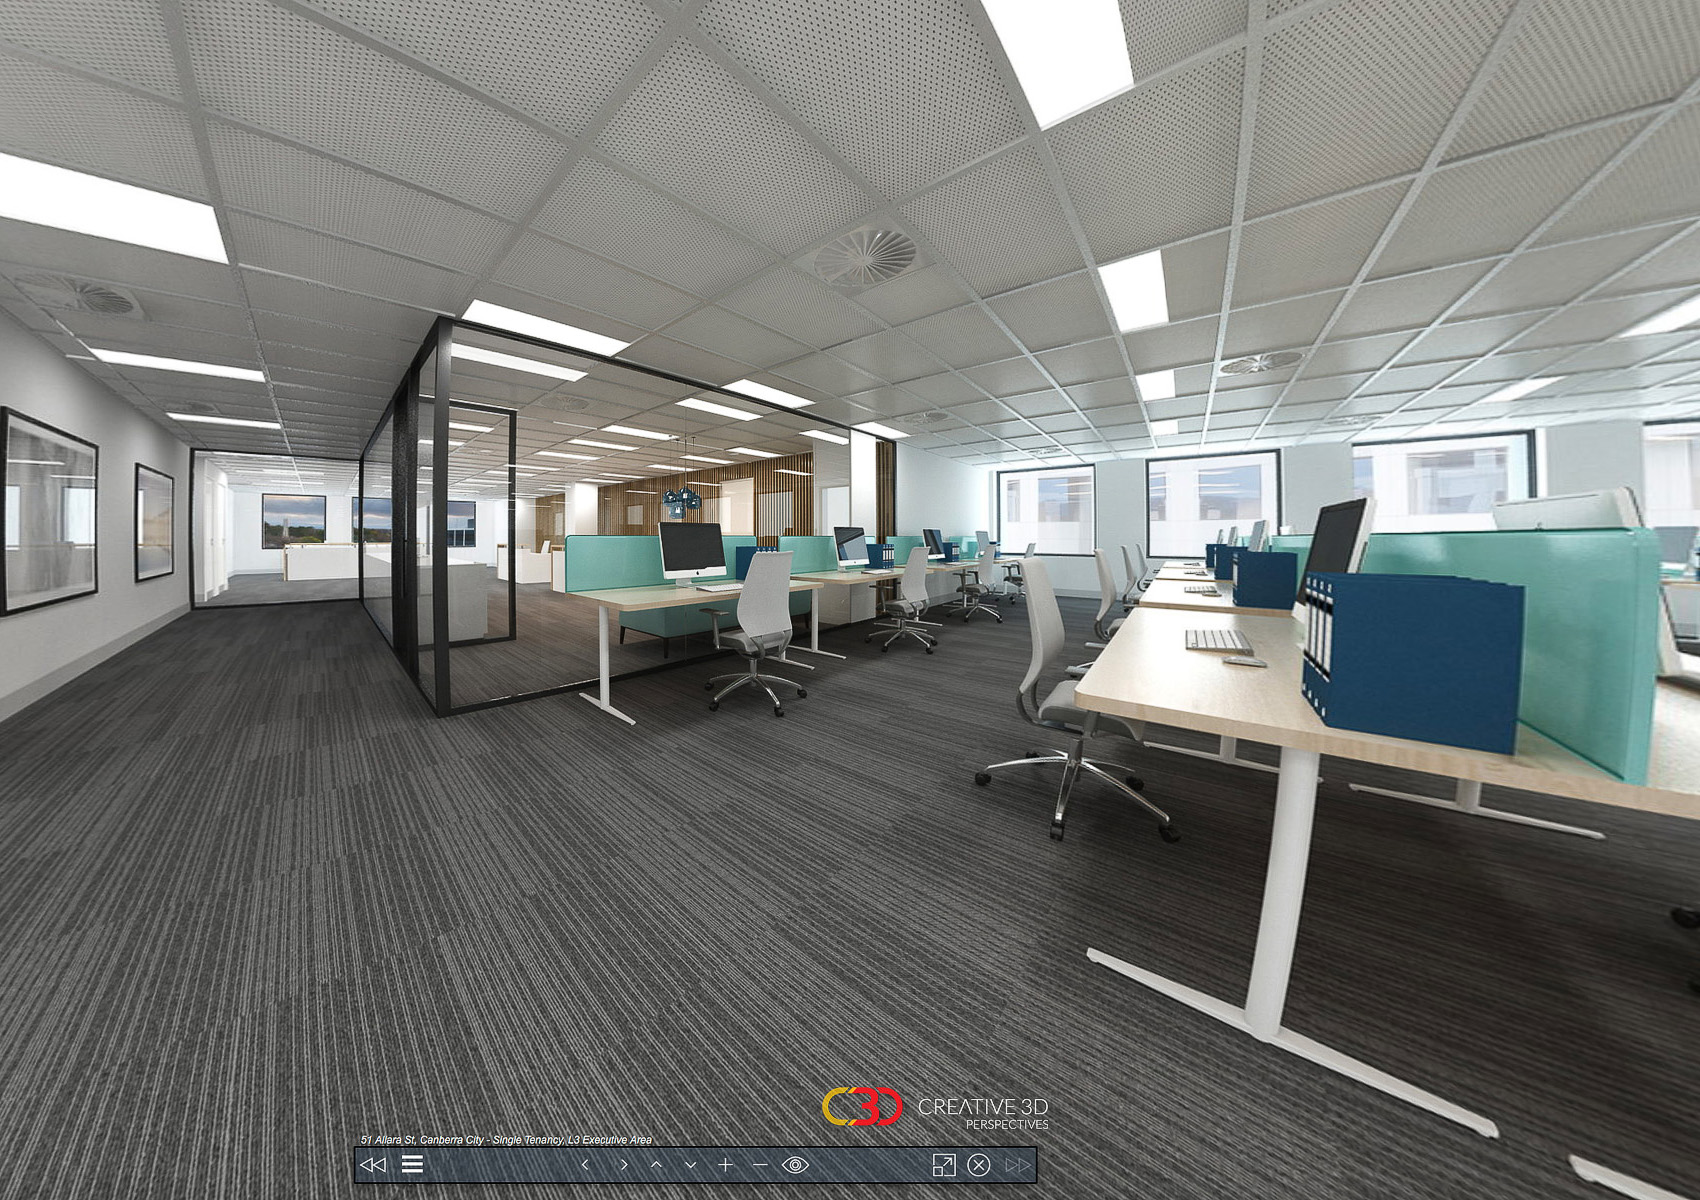 Inter-tenancy collaboration hub and breakout area shown, Creative 3D Perspective interior office screenshot from a virtual tour